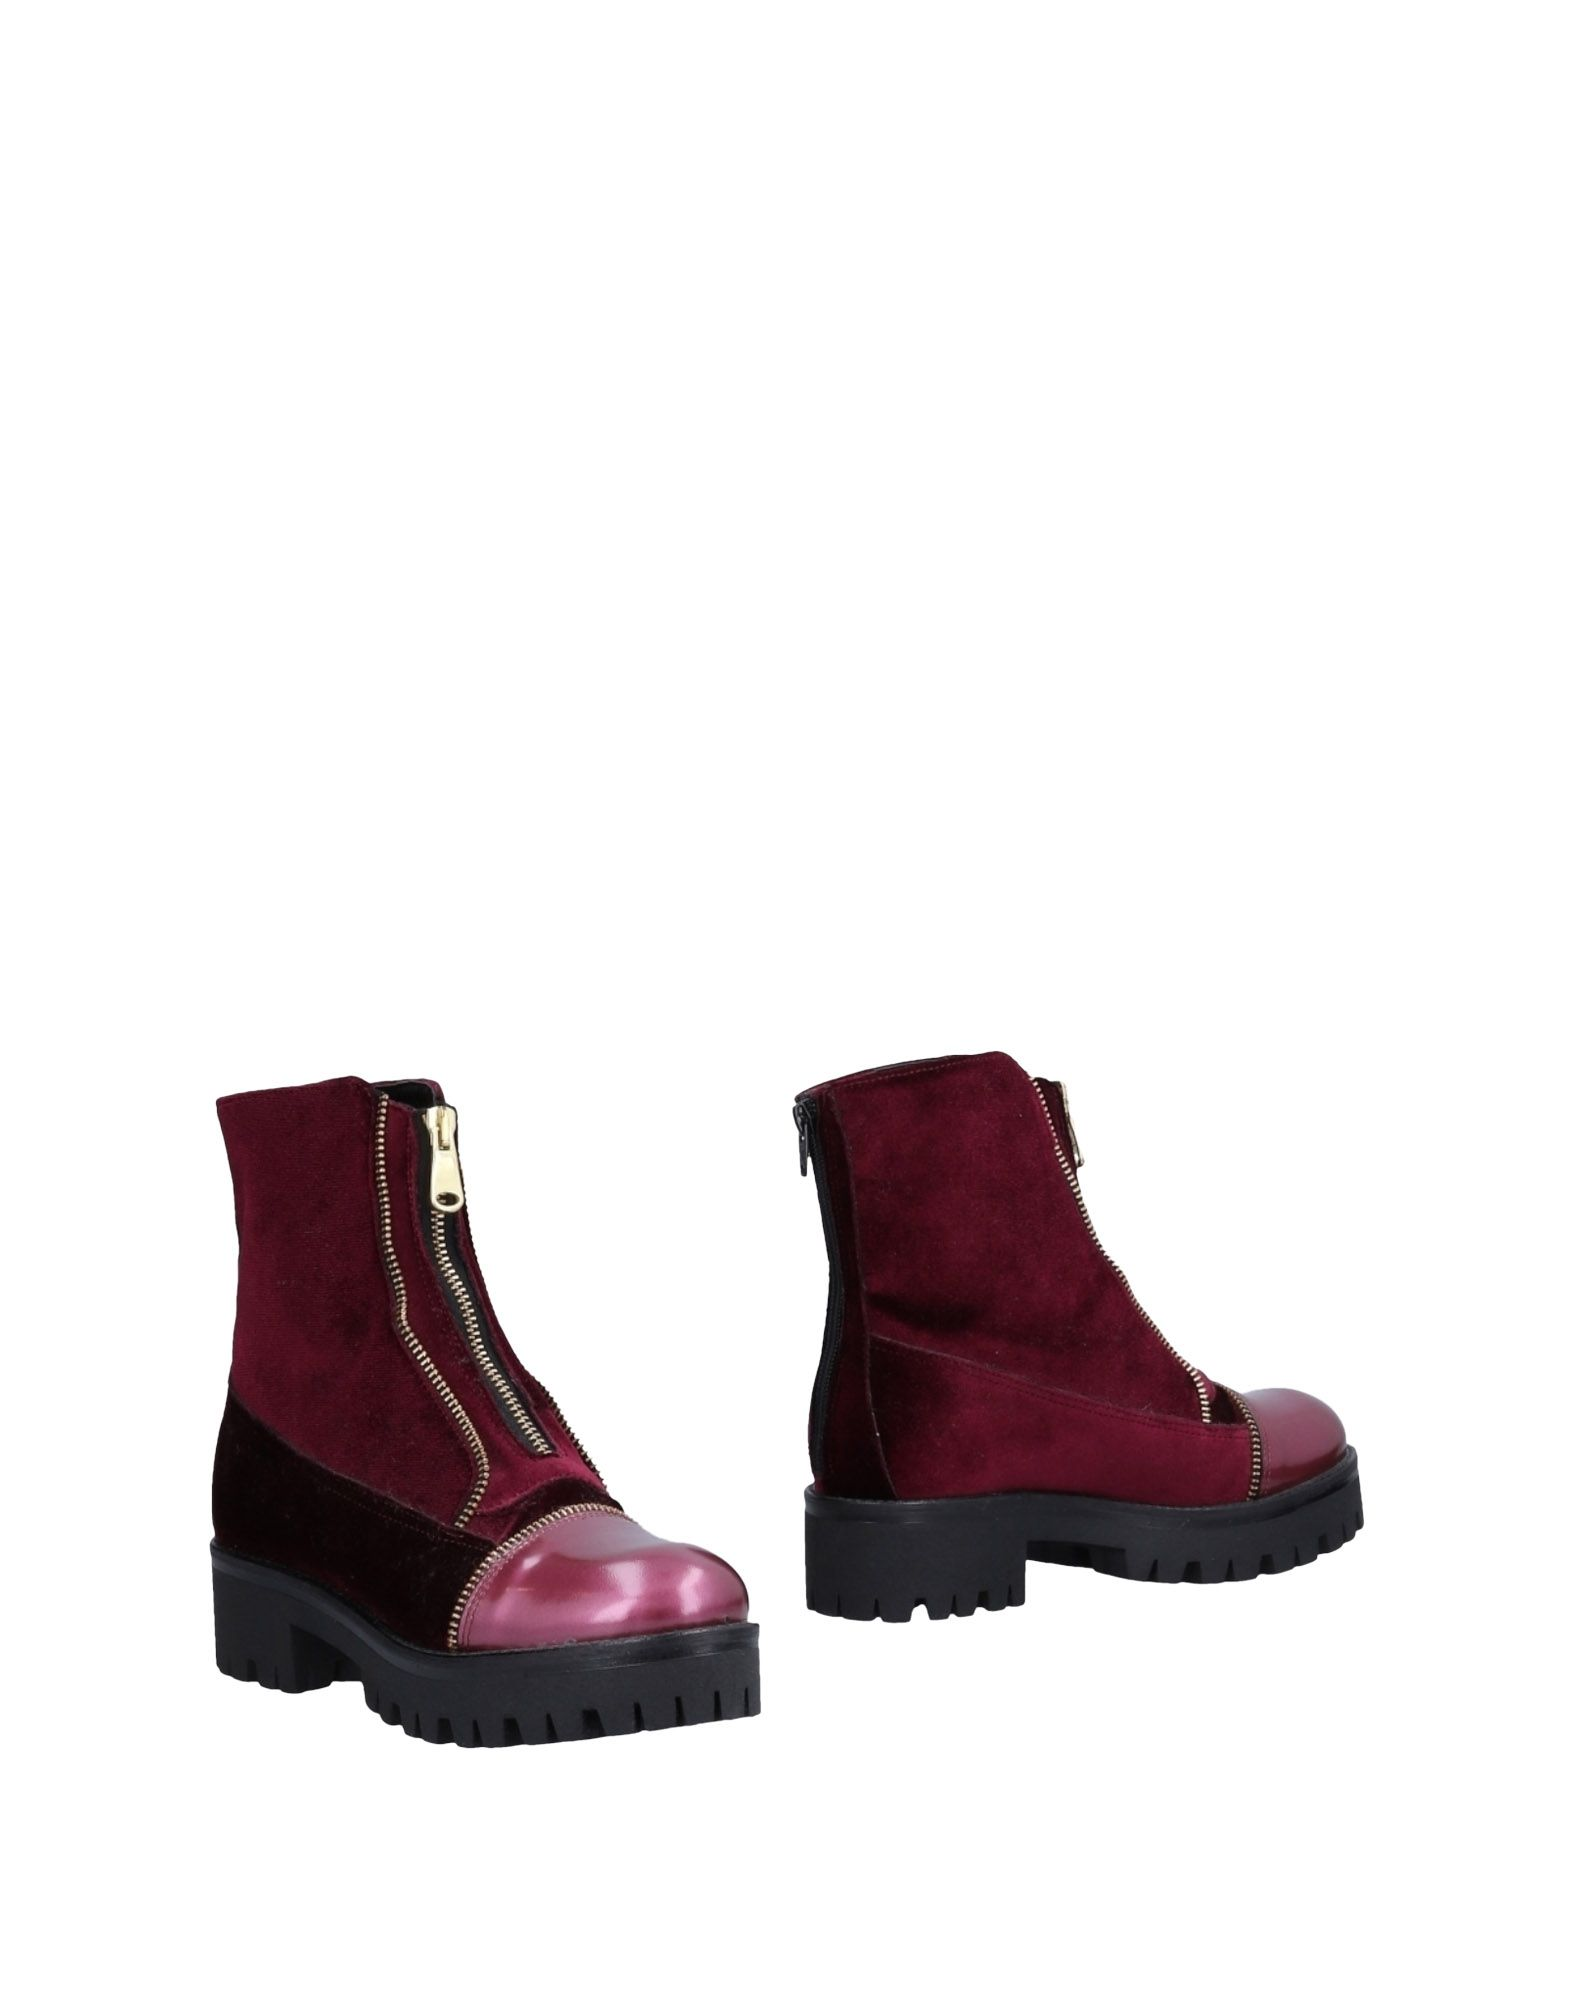 TIPE E TACCHI Ankle Boot in Maroon